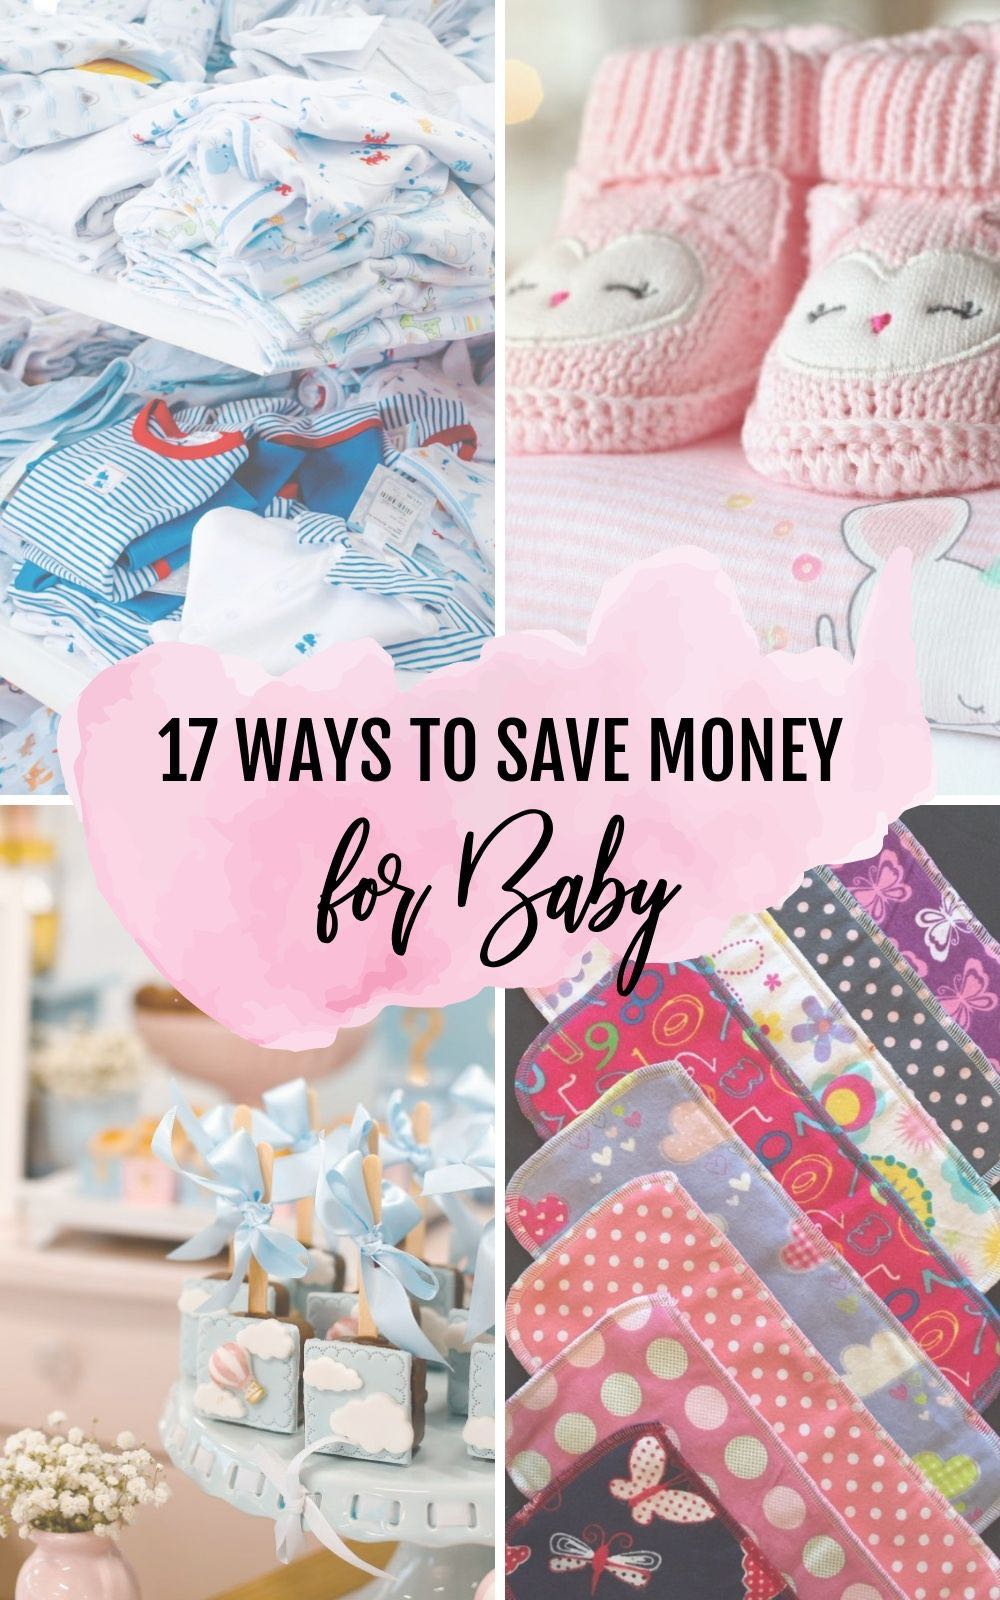 Save money for baby with these 17 Tips #baby #money #savingmoney